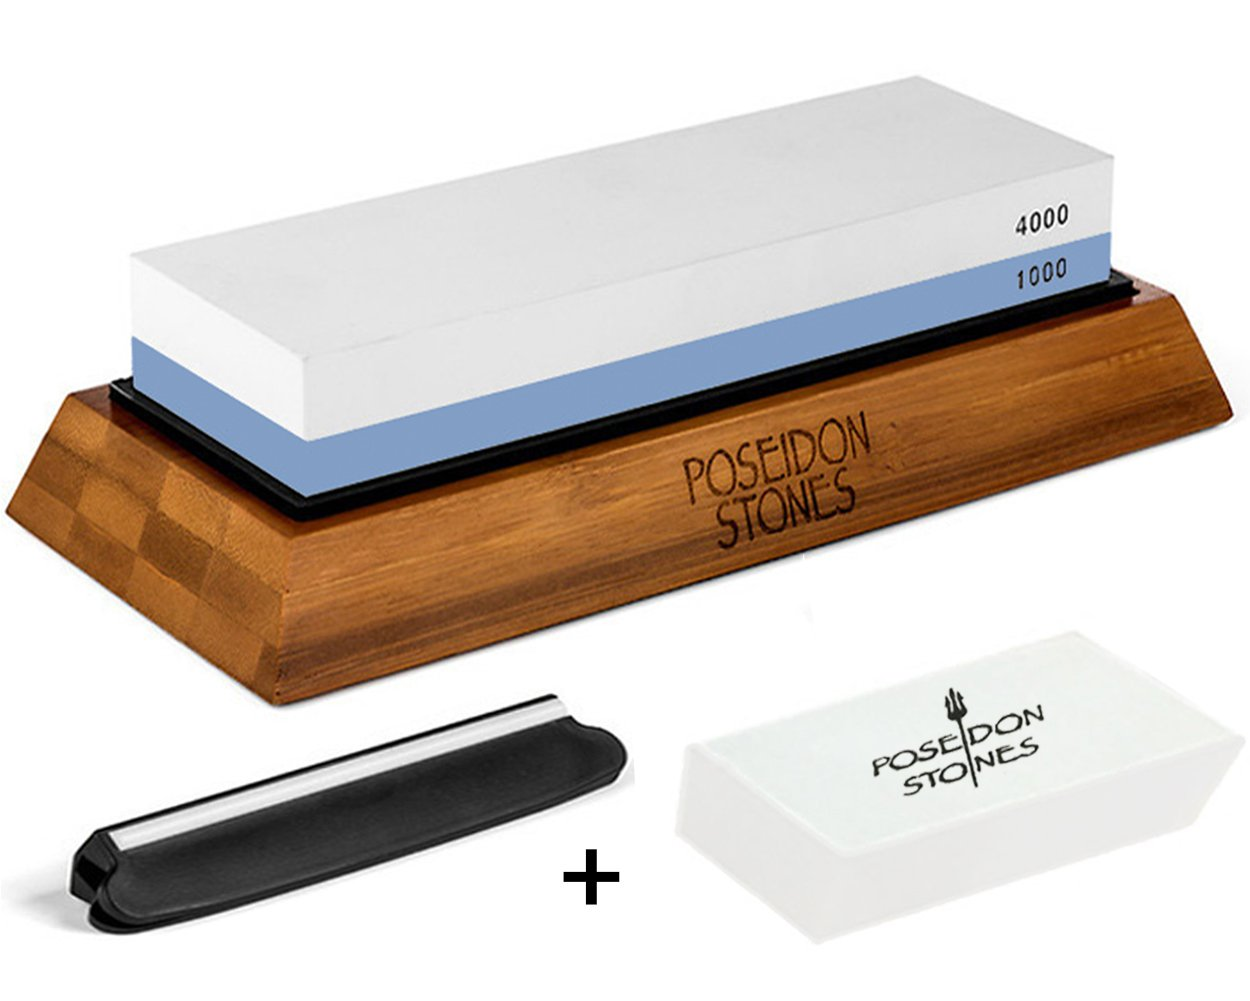 Premium Sharpening Stone Set - Japanese Style 1000 4000 Whetstone For Kitchen and Outdoor Knives - Bonus Flattening Stone and Angle Guide Included with Safe Non-Slip Bamboo Base